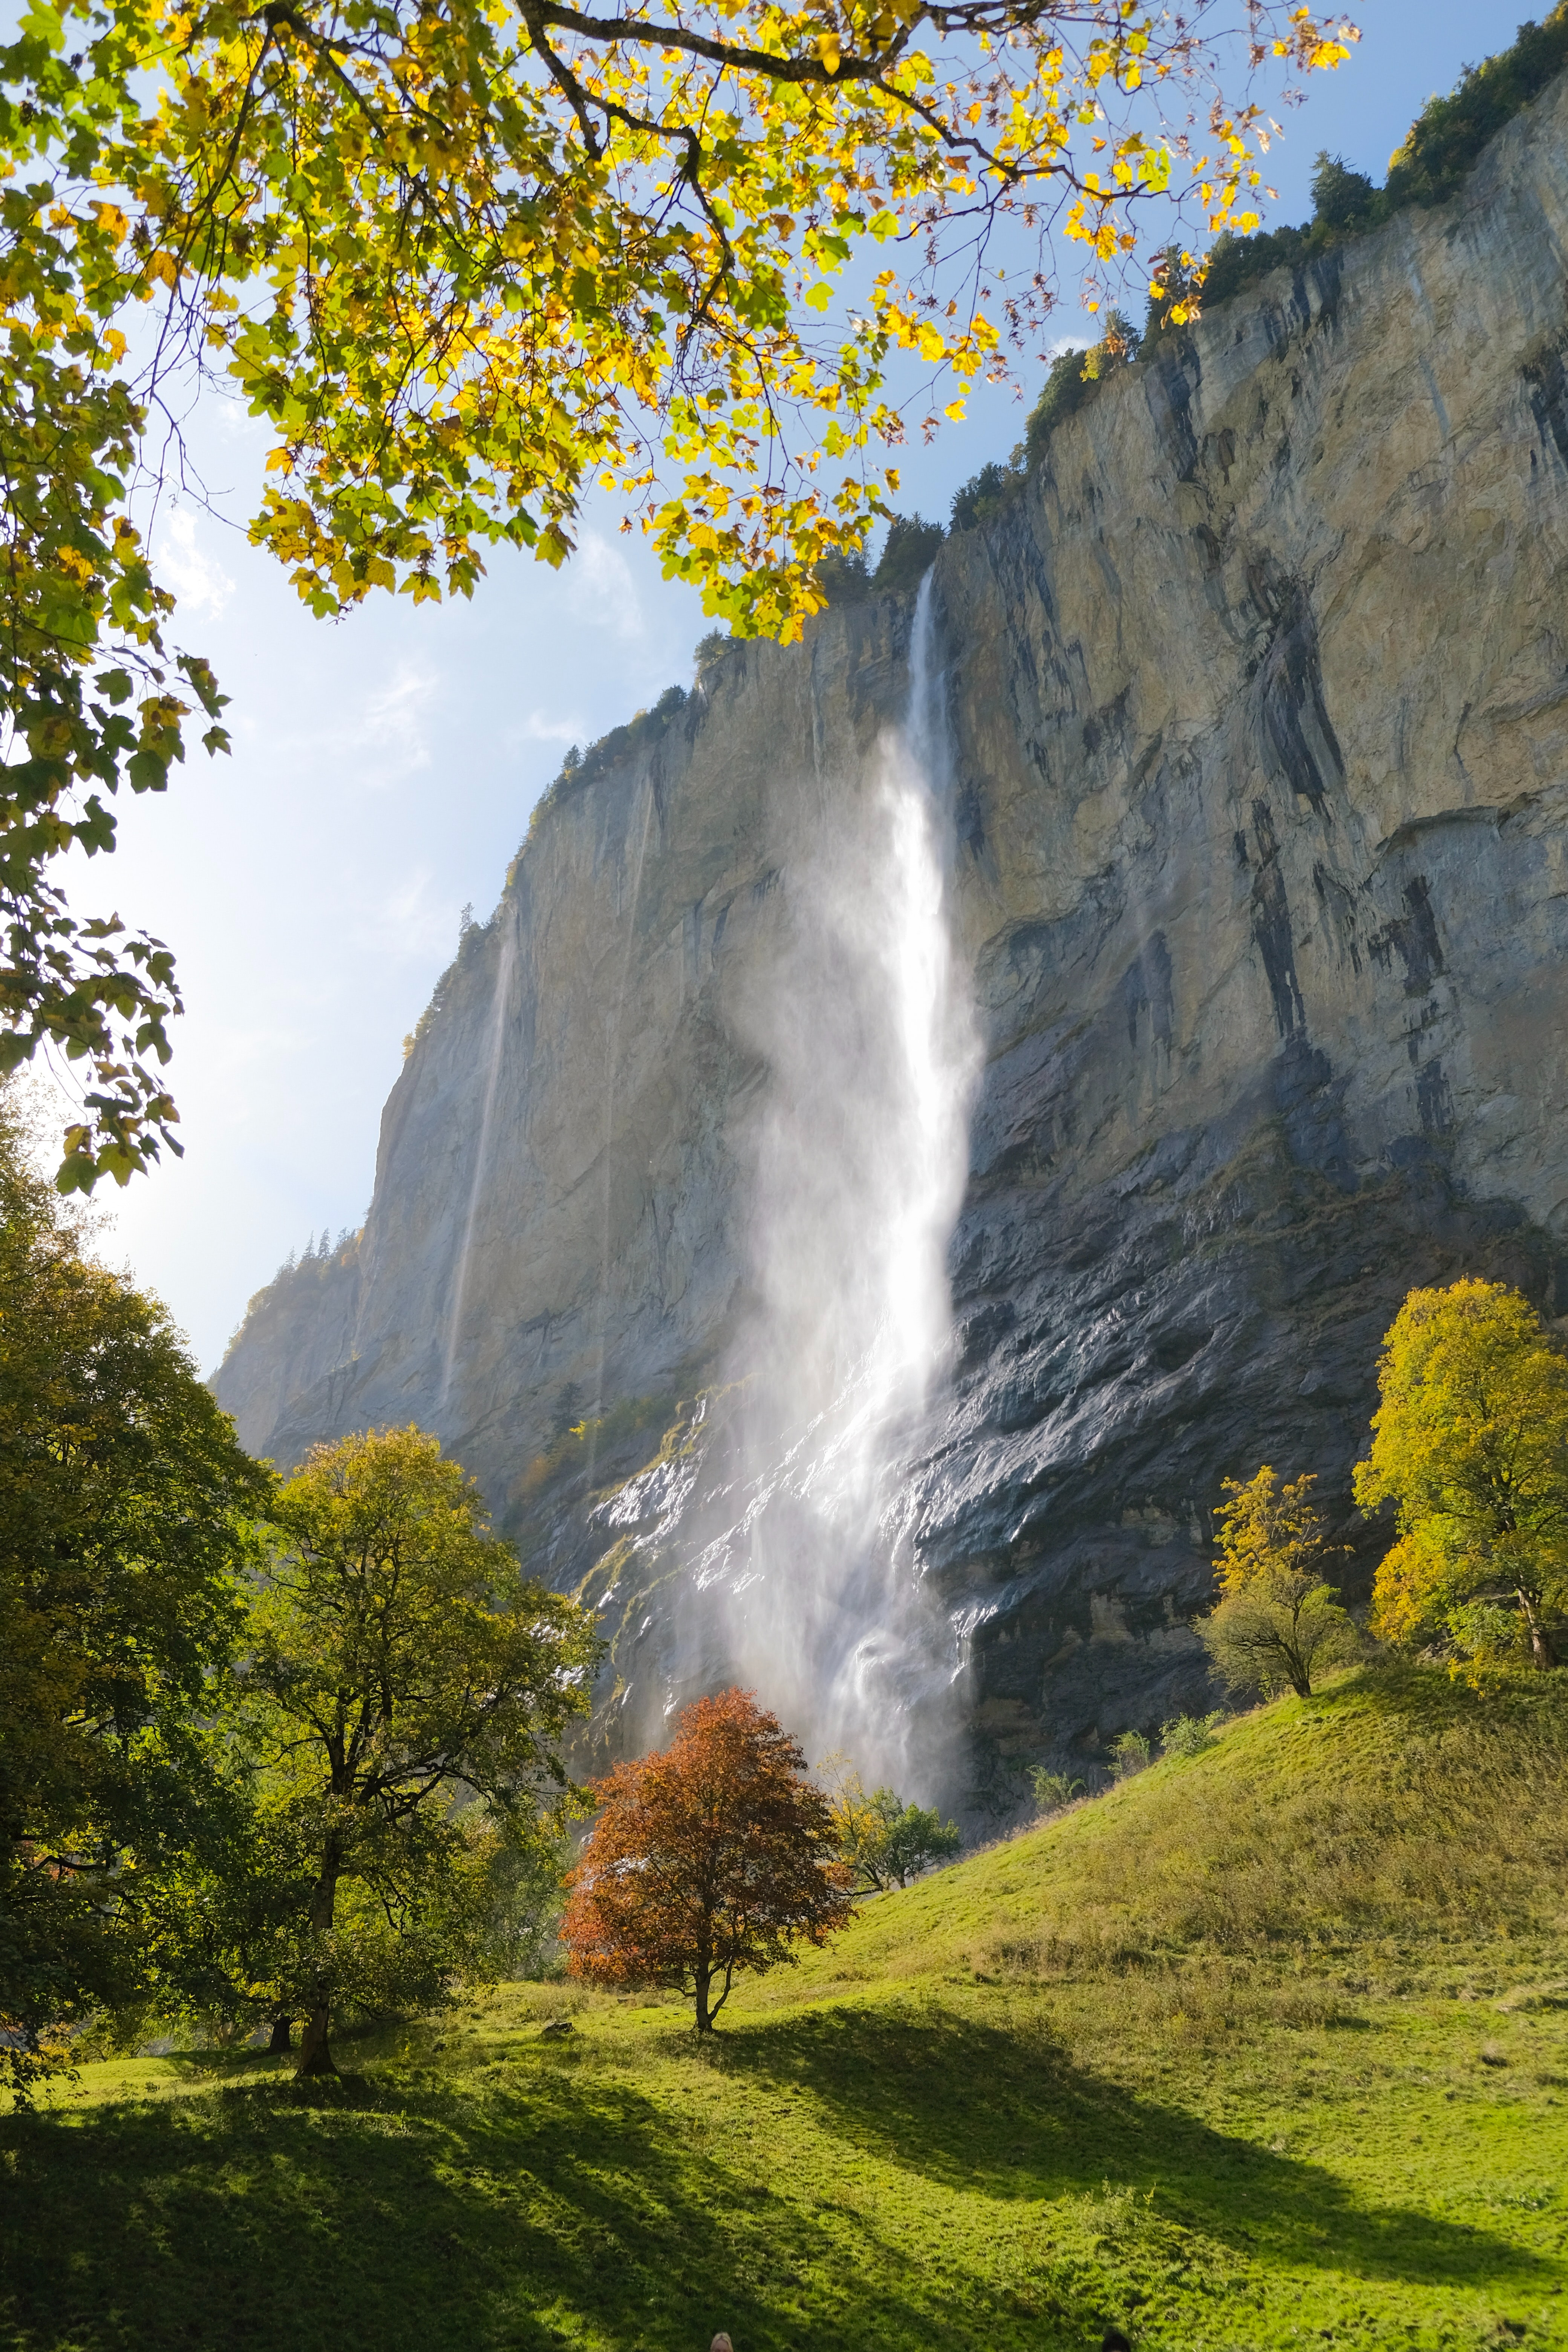 76619 download wallpaper Landscape, Nature, Trees, Rock, Waterfall screensavers and pictures for free